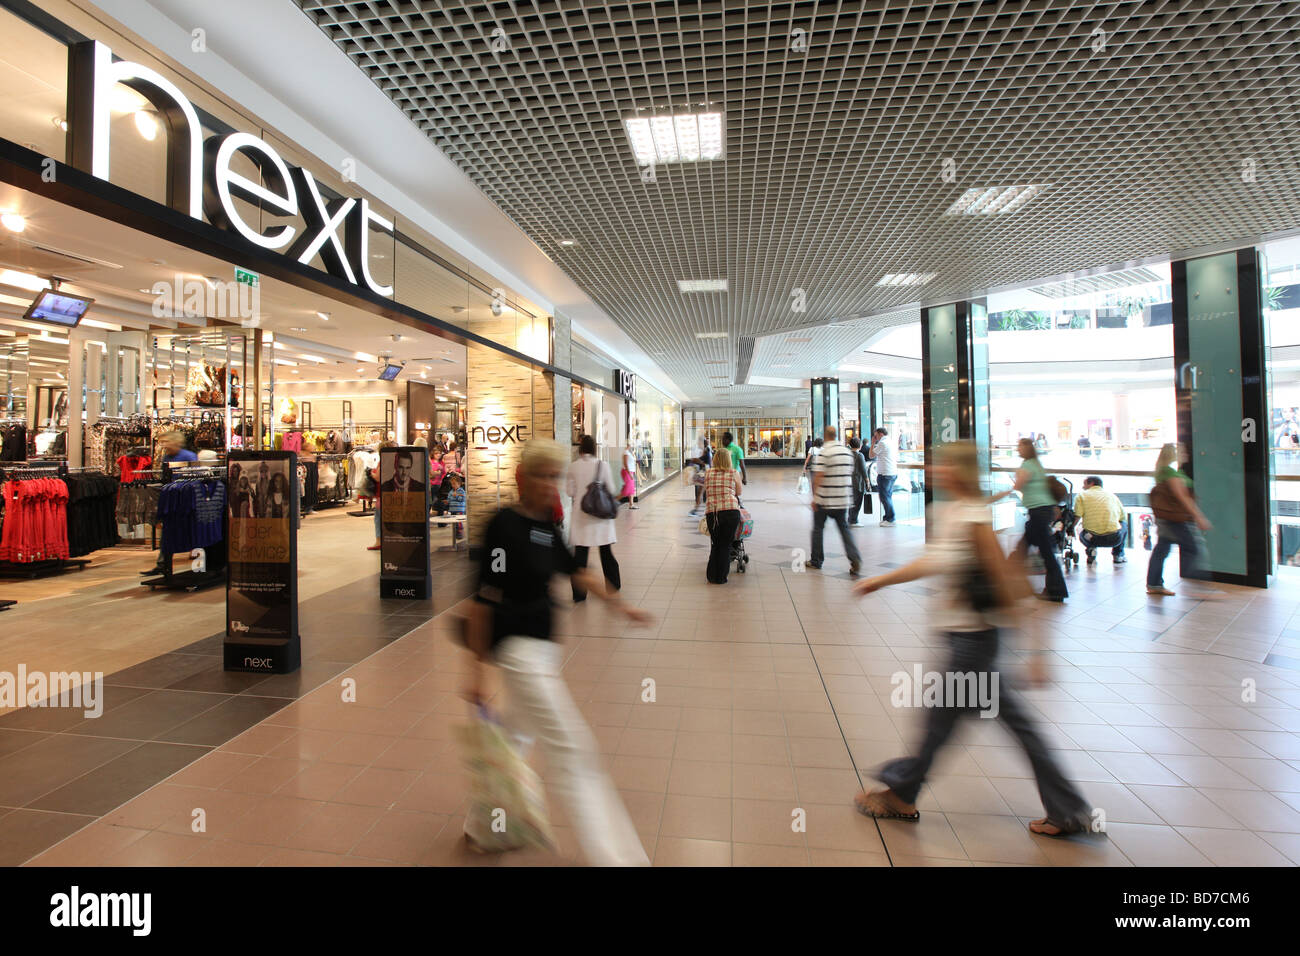 Shoppers at a busy Next store in a shopping centre in the UK - Stock Image